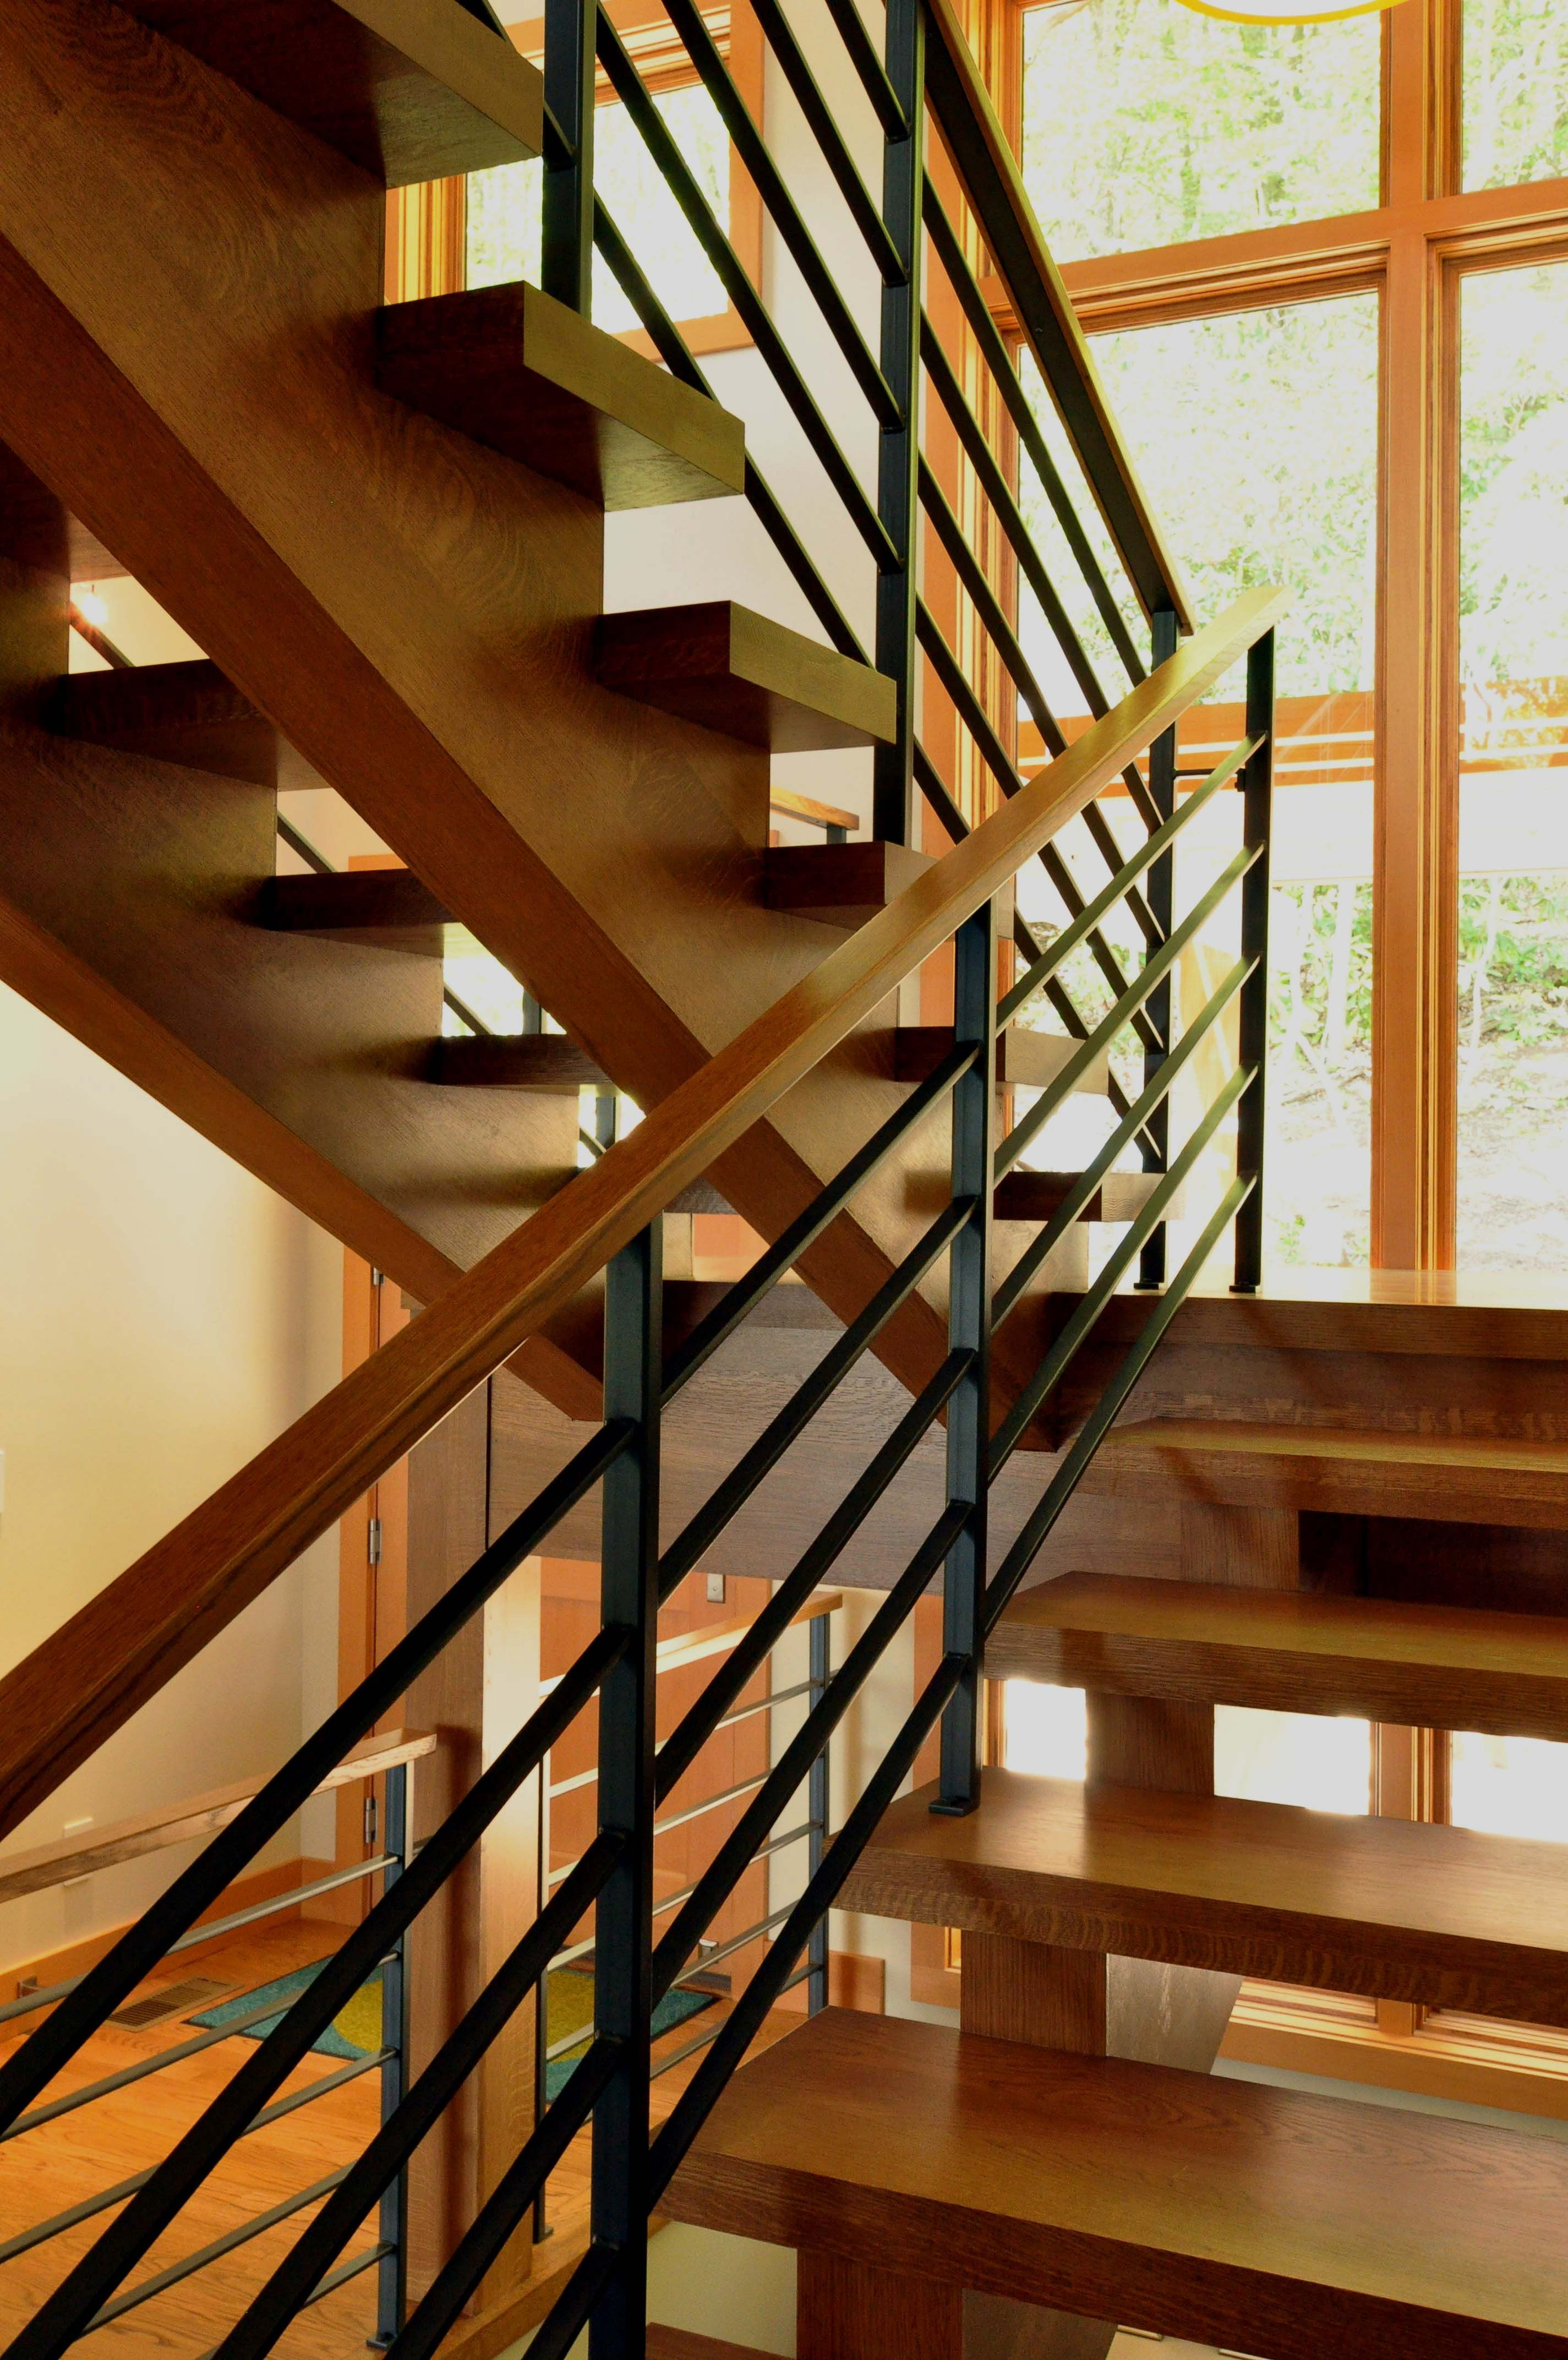 building handrail banisters railings canada railing ideas wooden stair code cable height images systems interior kits